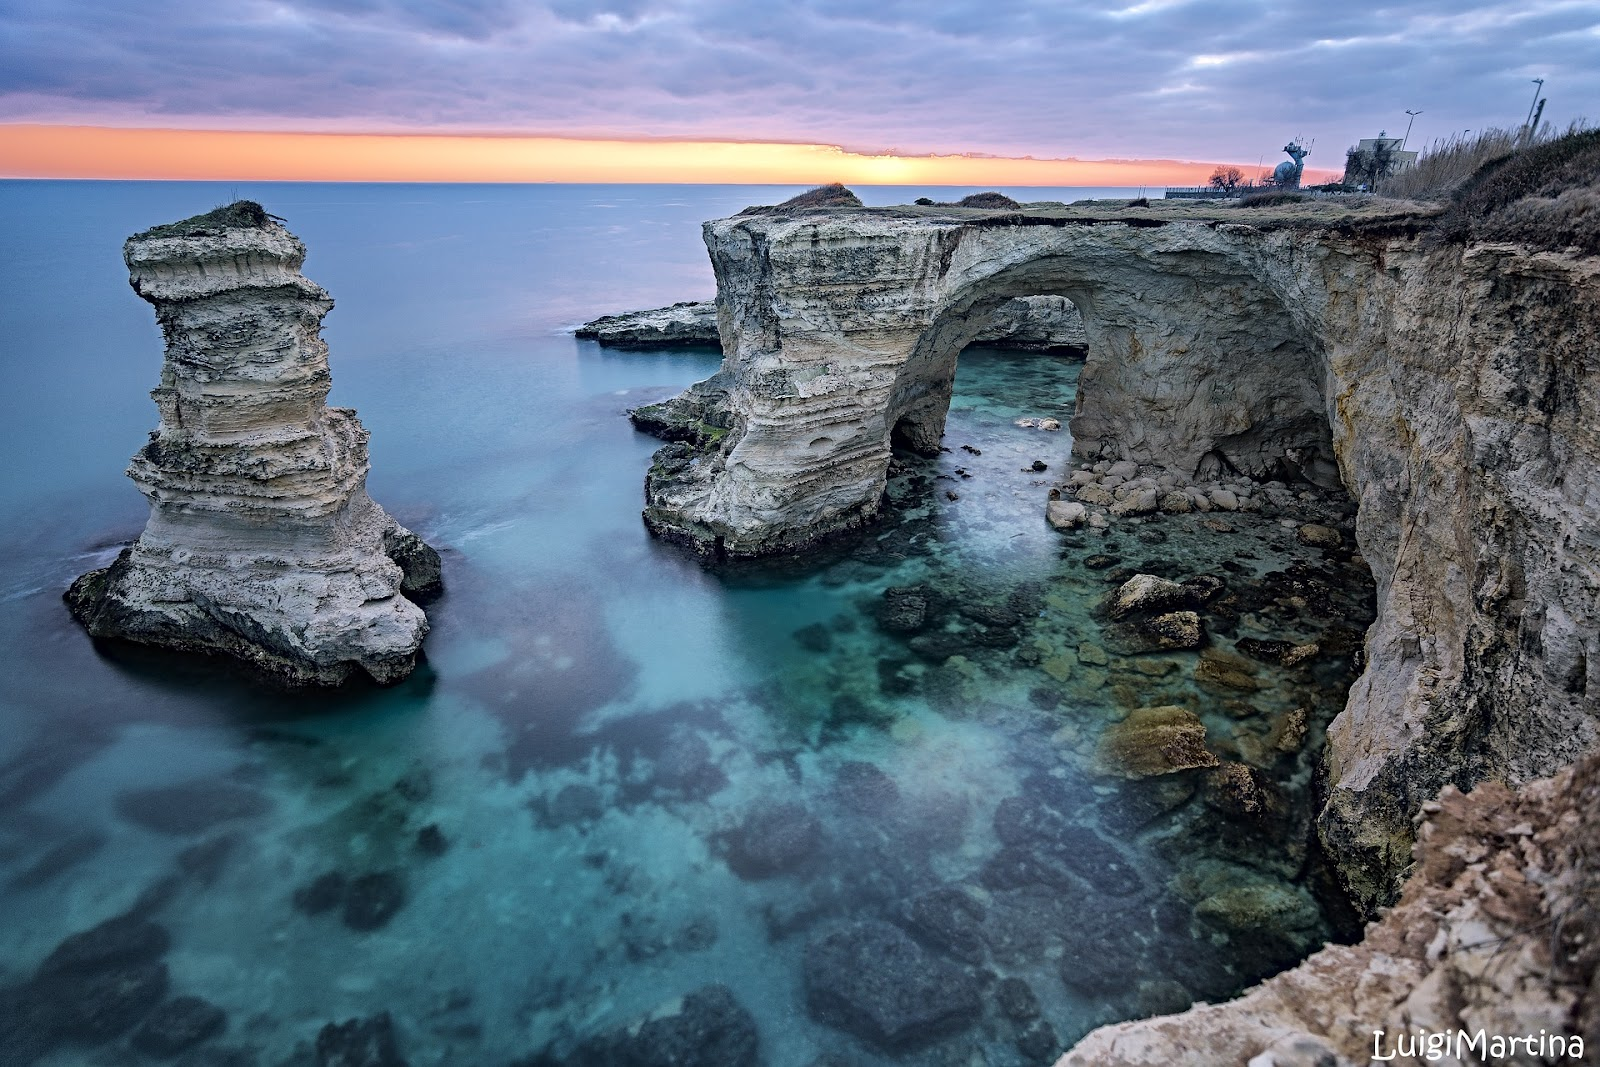 lecce seaside cliffs crystal clear sea during sunset. Lecce is a must on any Southern Italy road trip.